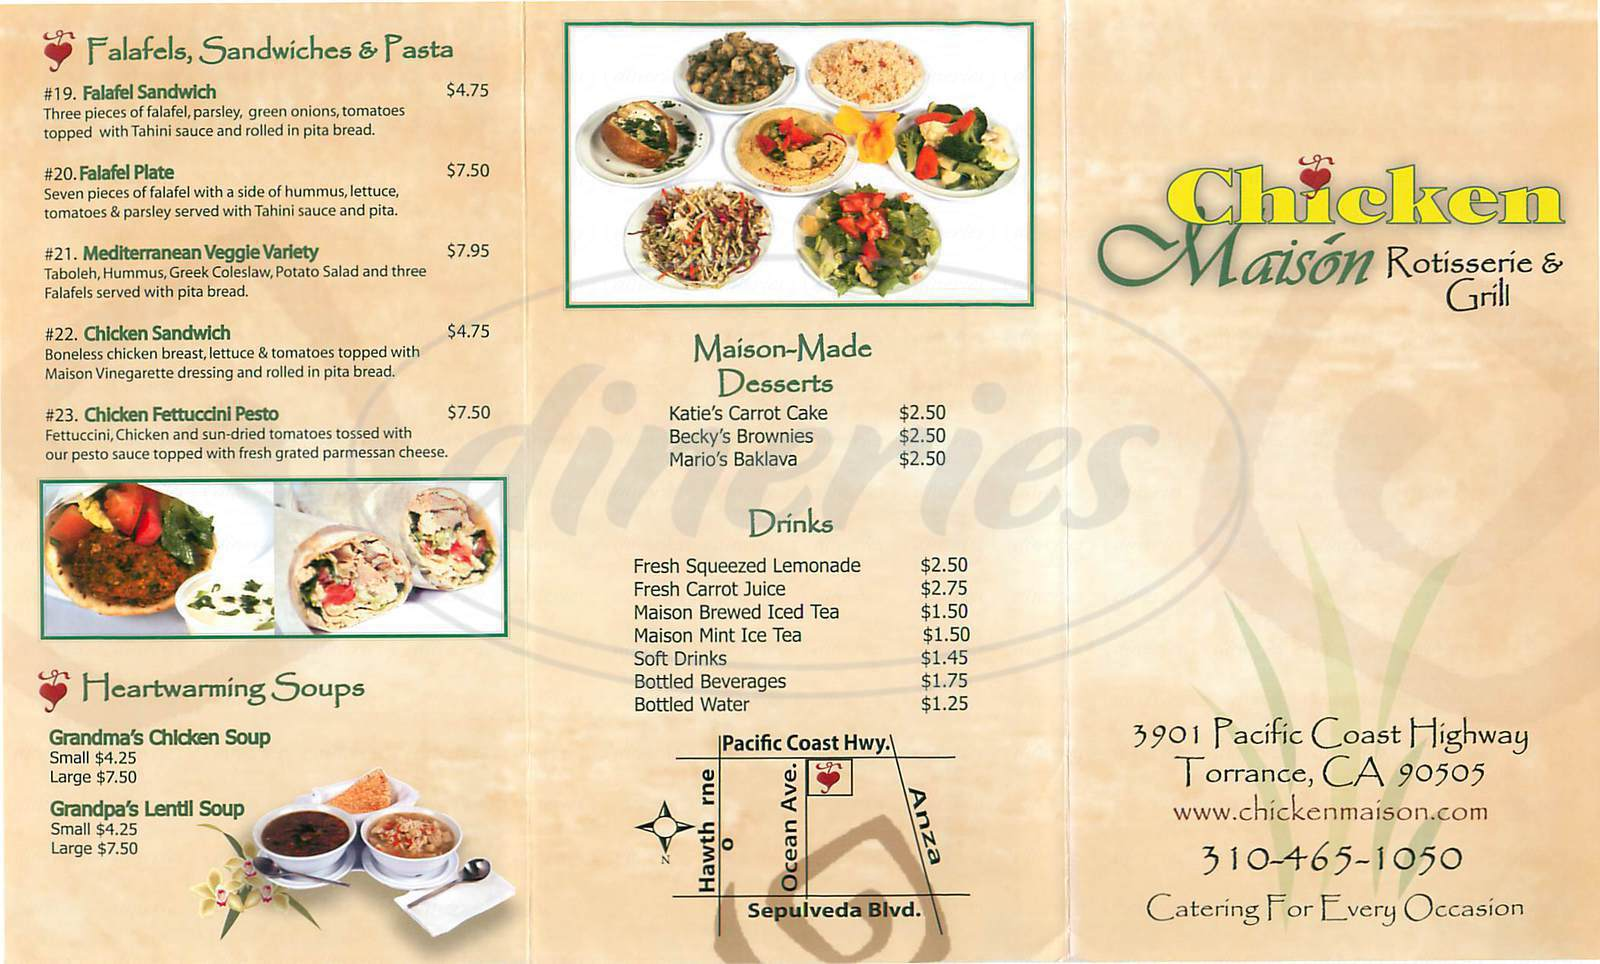 menu for Chicken Maison